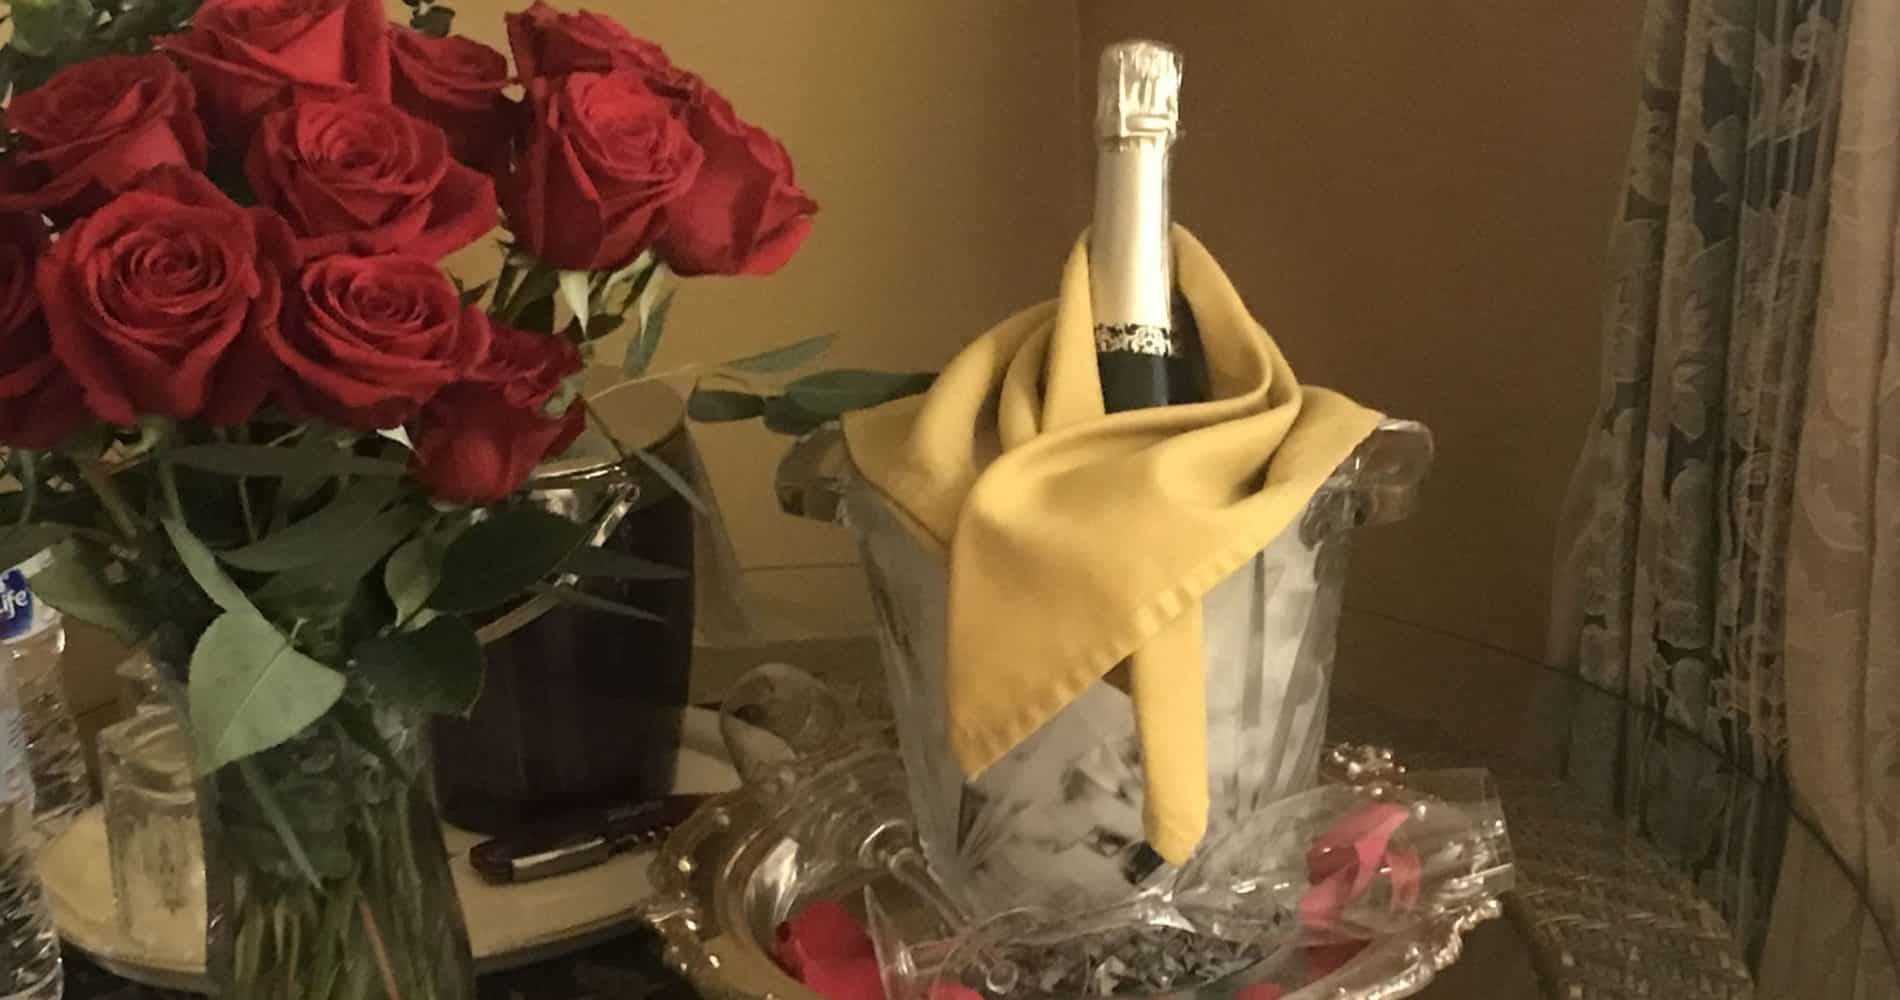 bouquet of red roses and bottle of champagne with 2 champagne flutes